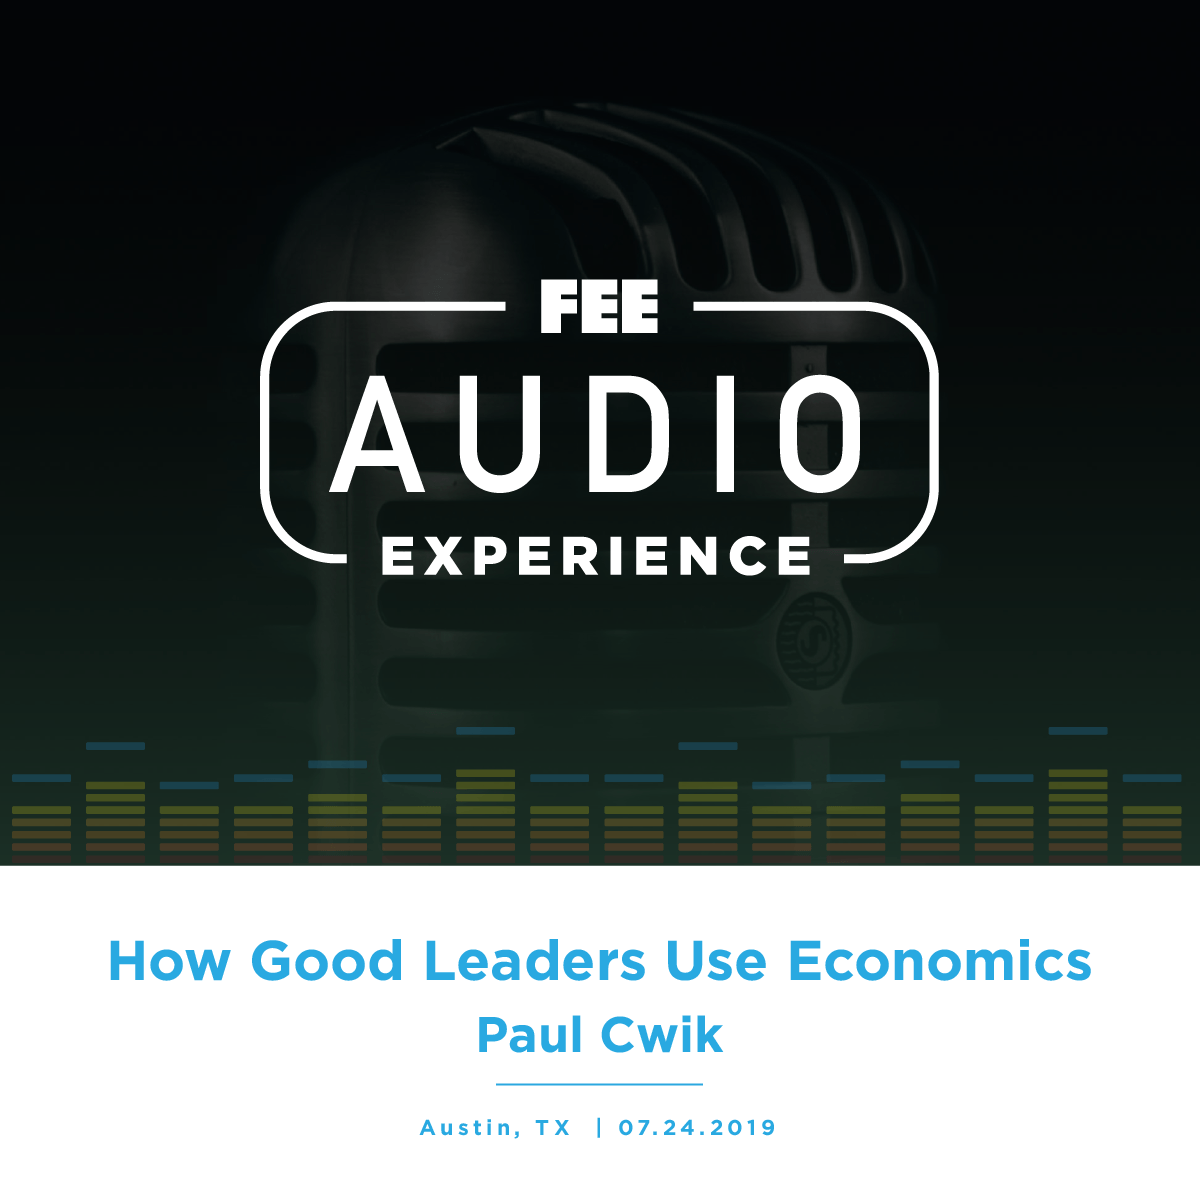 St. Edwards 2019 | How Good Leaders Use Economics